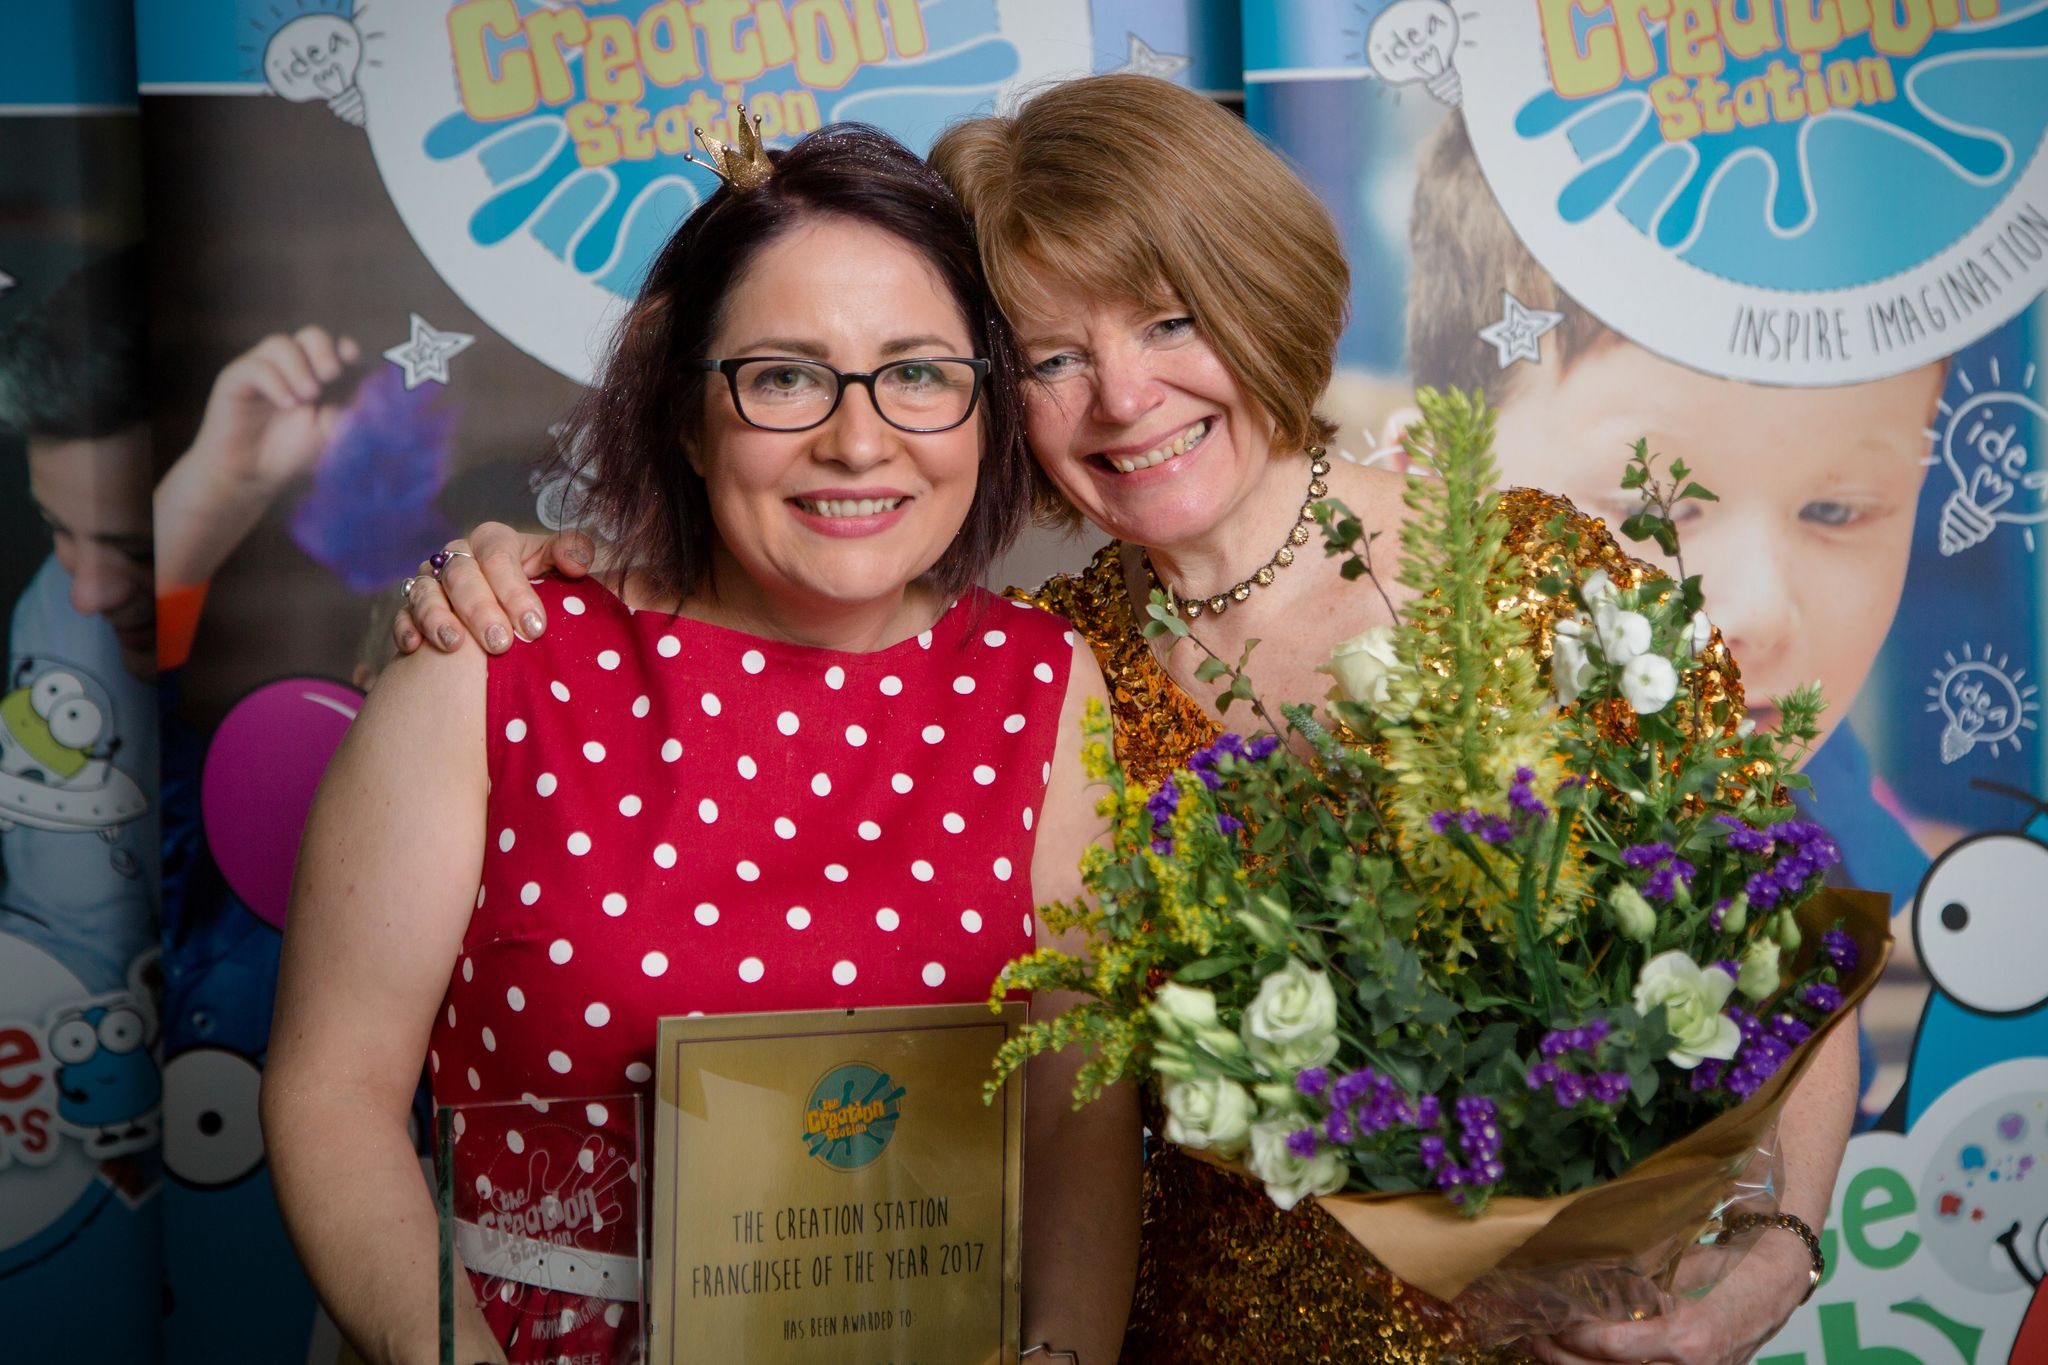 Conference 17 Ruth Franchisee of the year